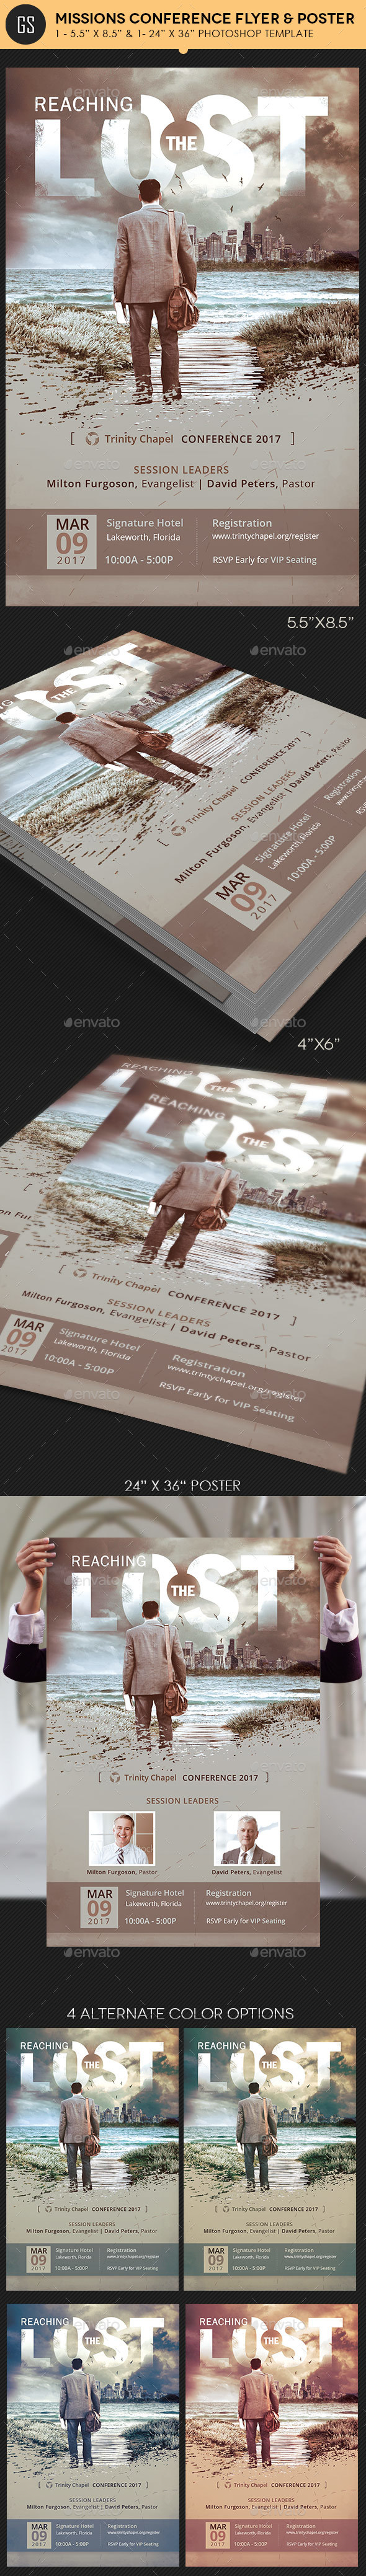 Missions Conference Flyer Poster Template - Church Flyers